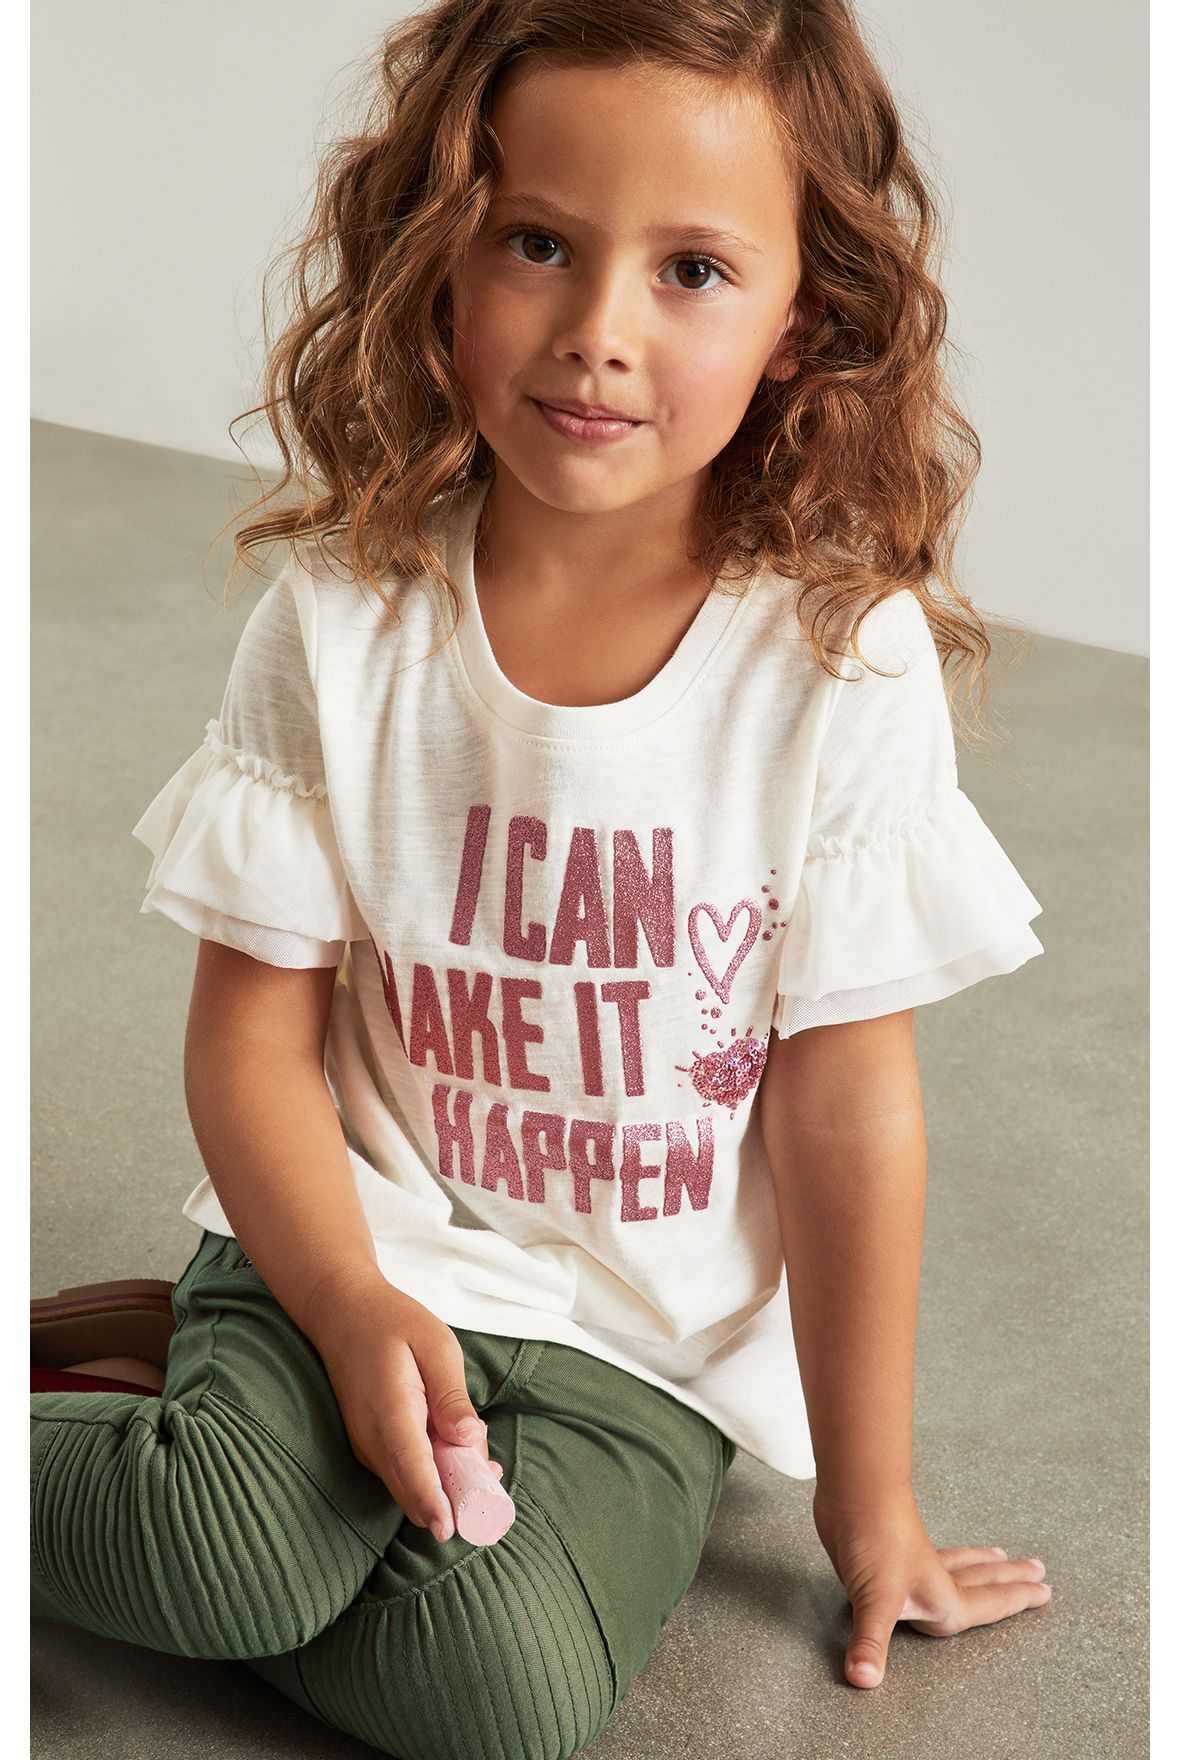 Camiseta-BCBGirls-I-can-make-it-happen-B638SK107_IVO